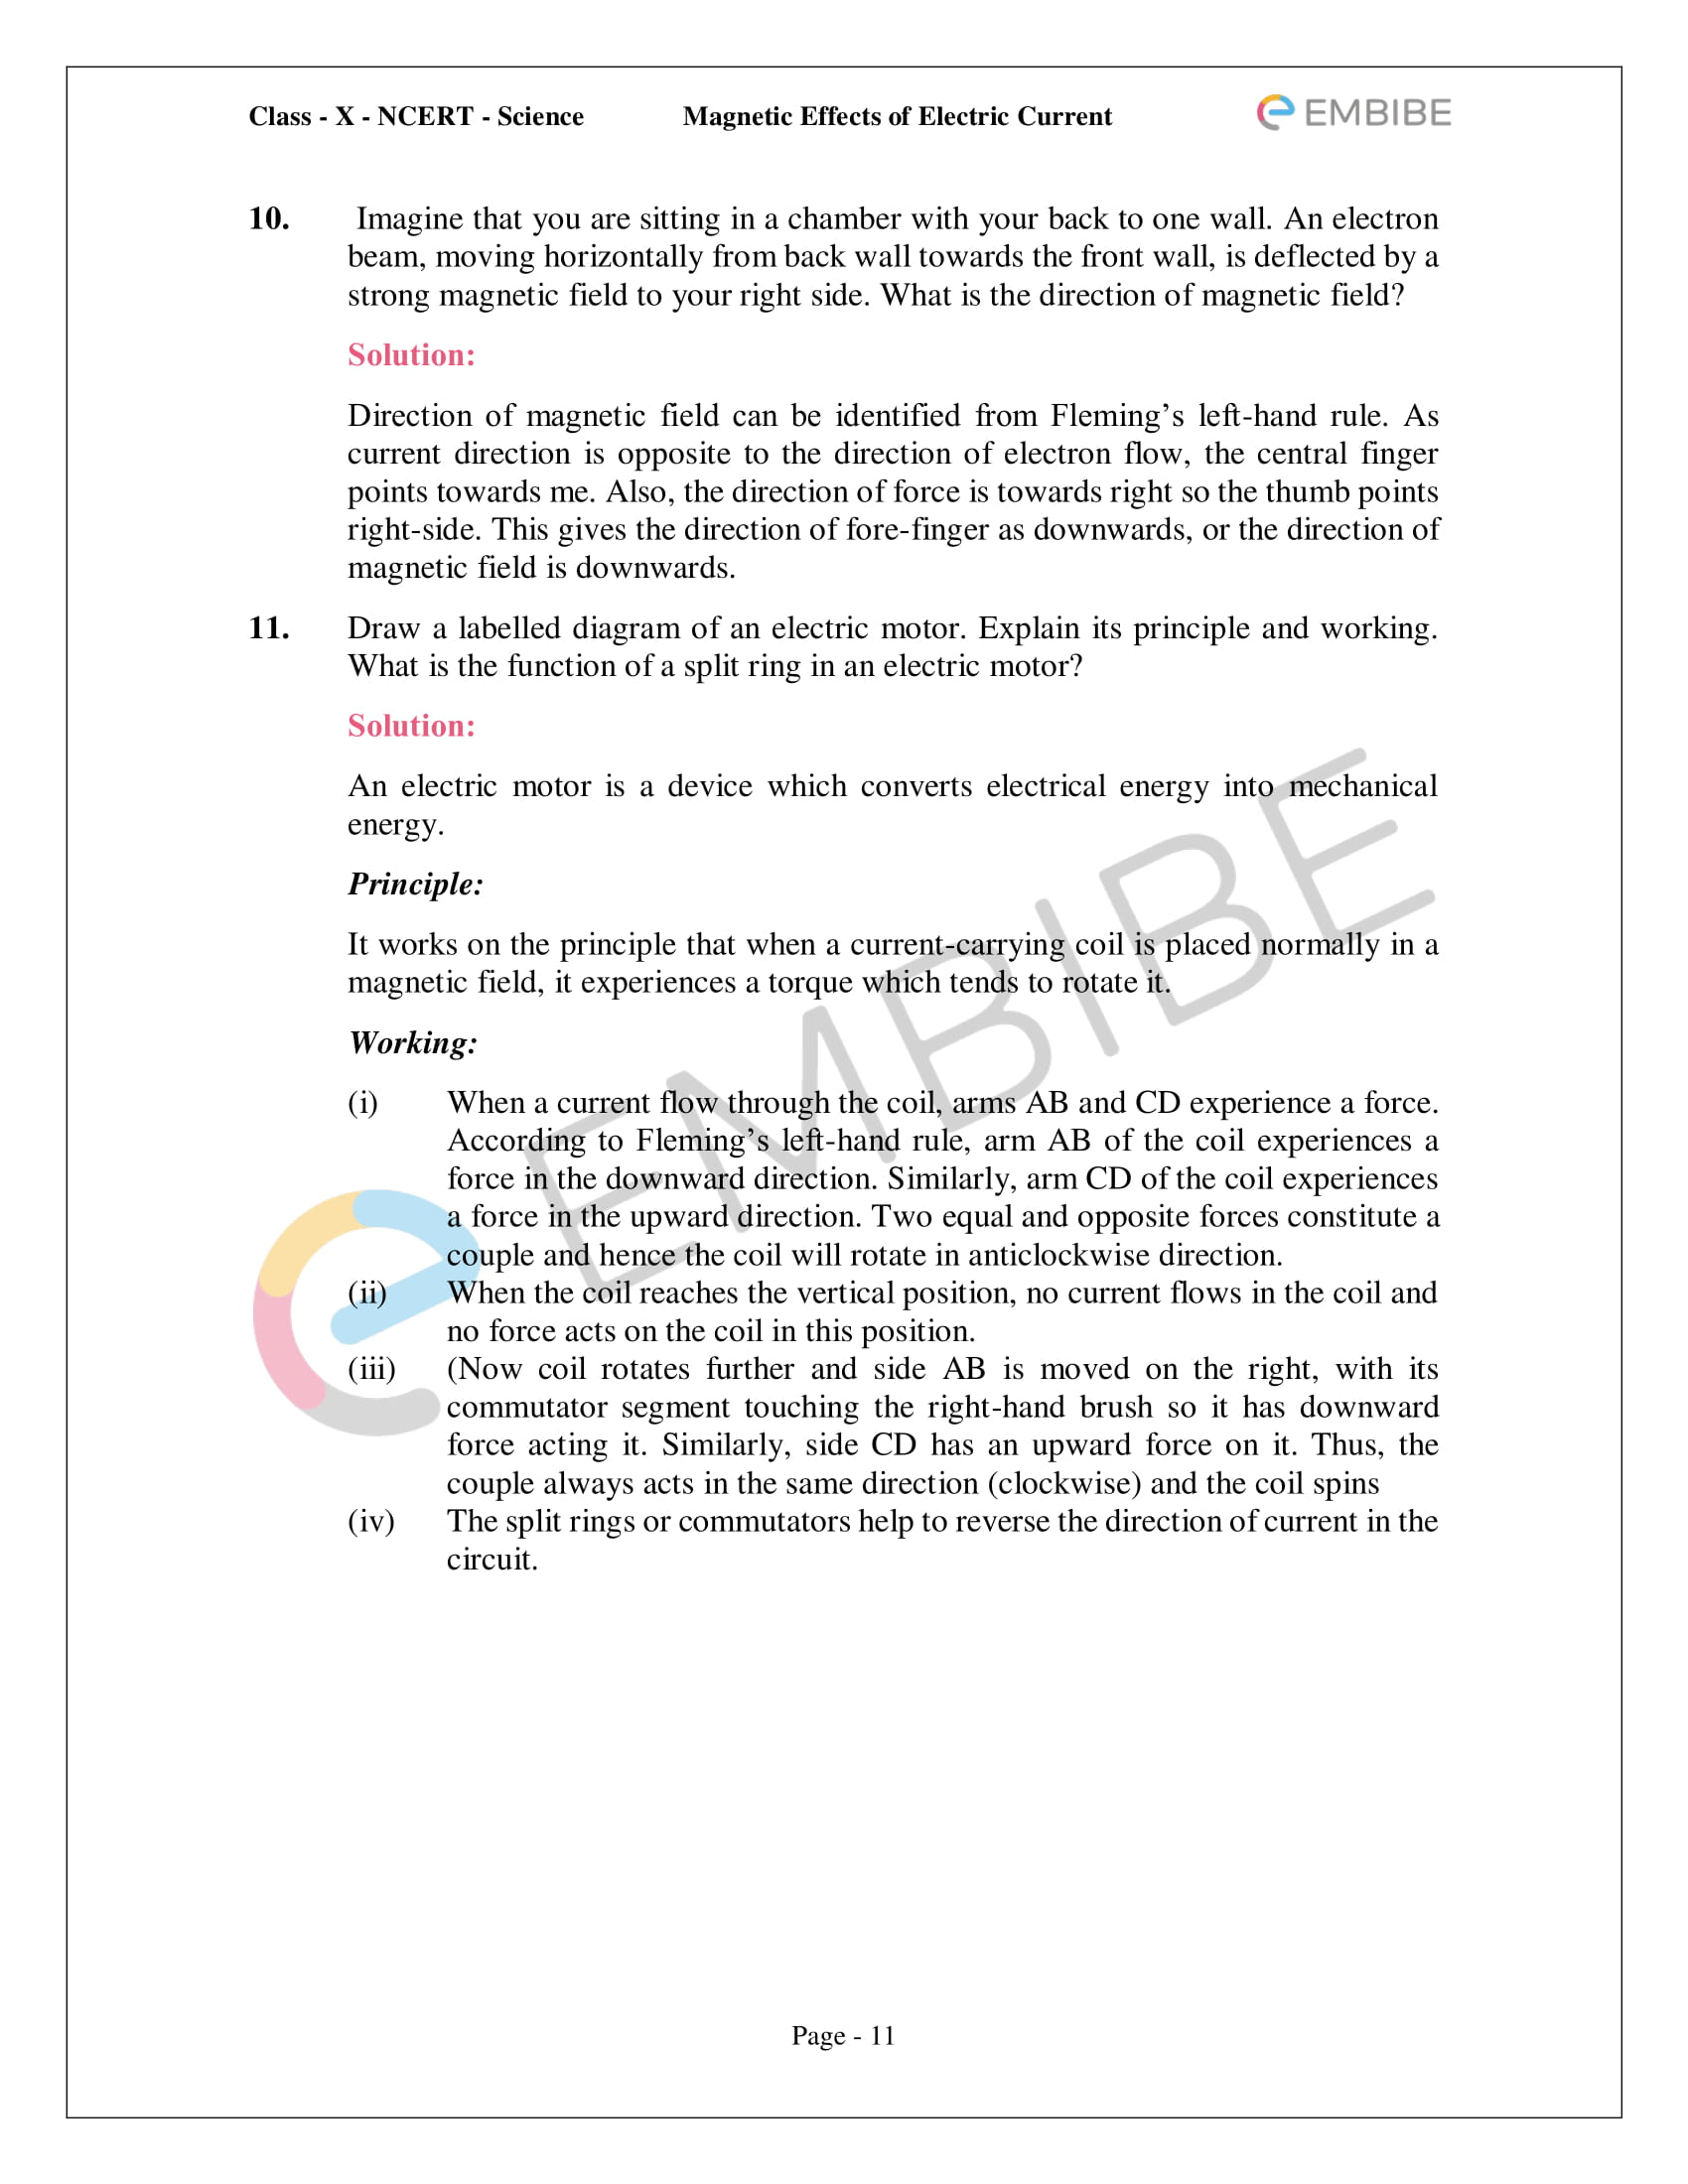 CBSE NCERT Solutions For Class 10 Science Chapter 13 - Magnetic Effects of Electric Current - 11